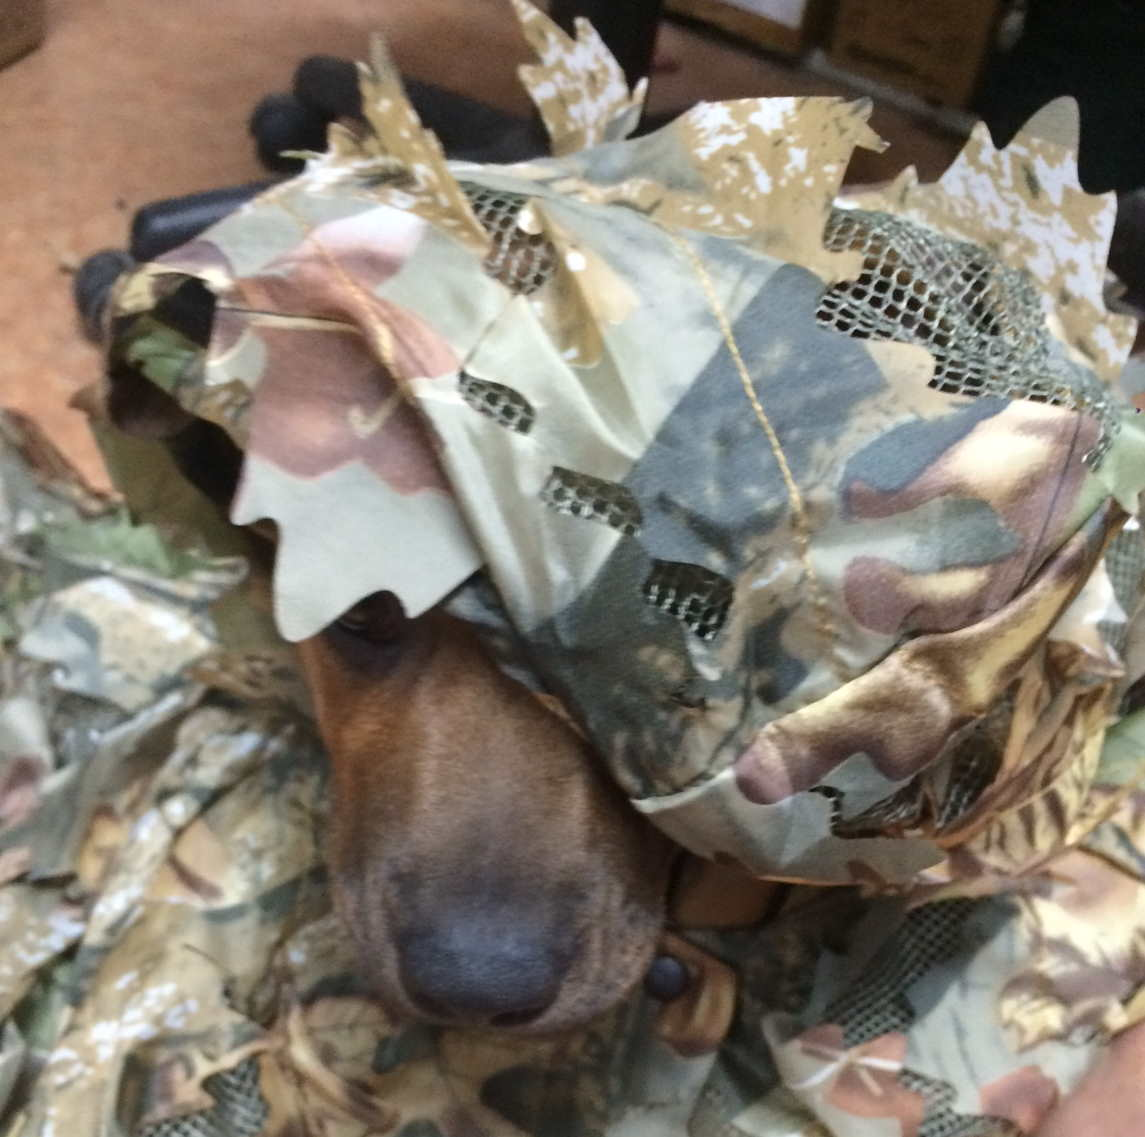 I don't fit into my camo yet!